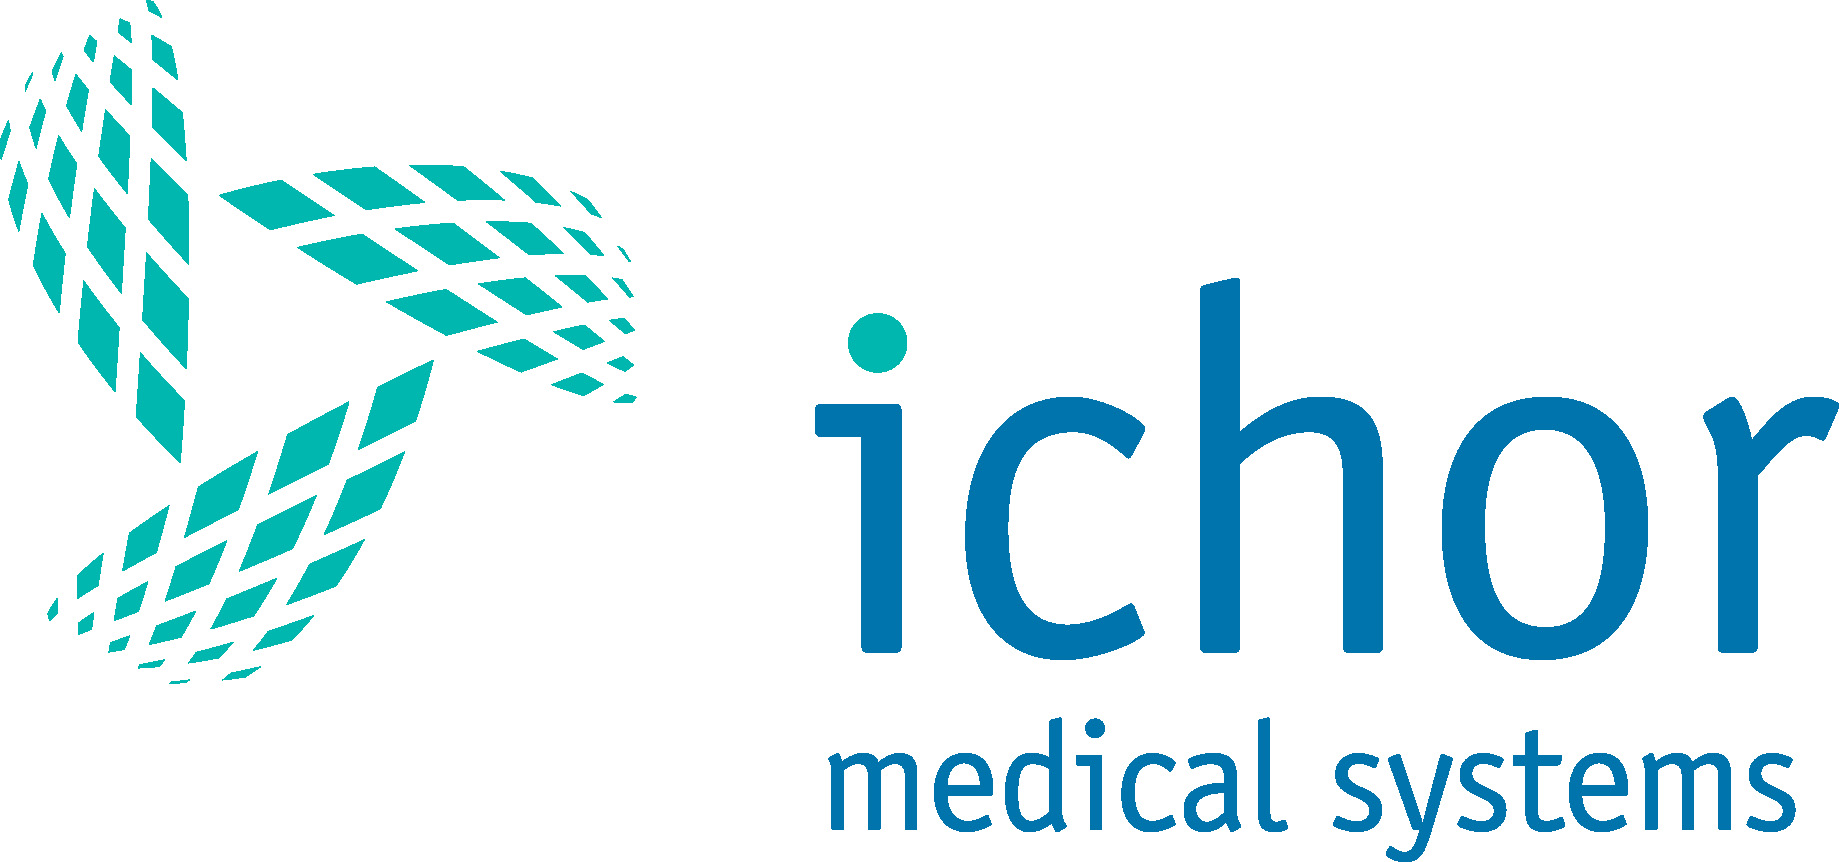 Ichor Medical Systems